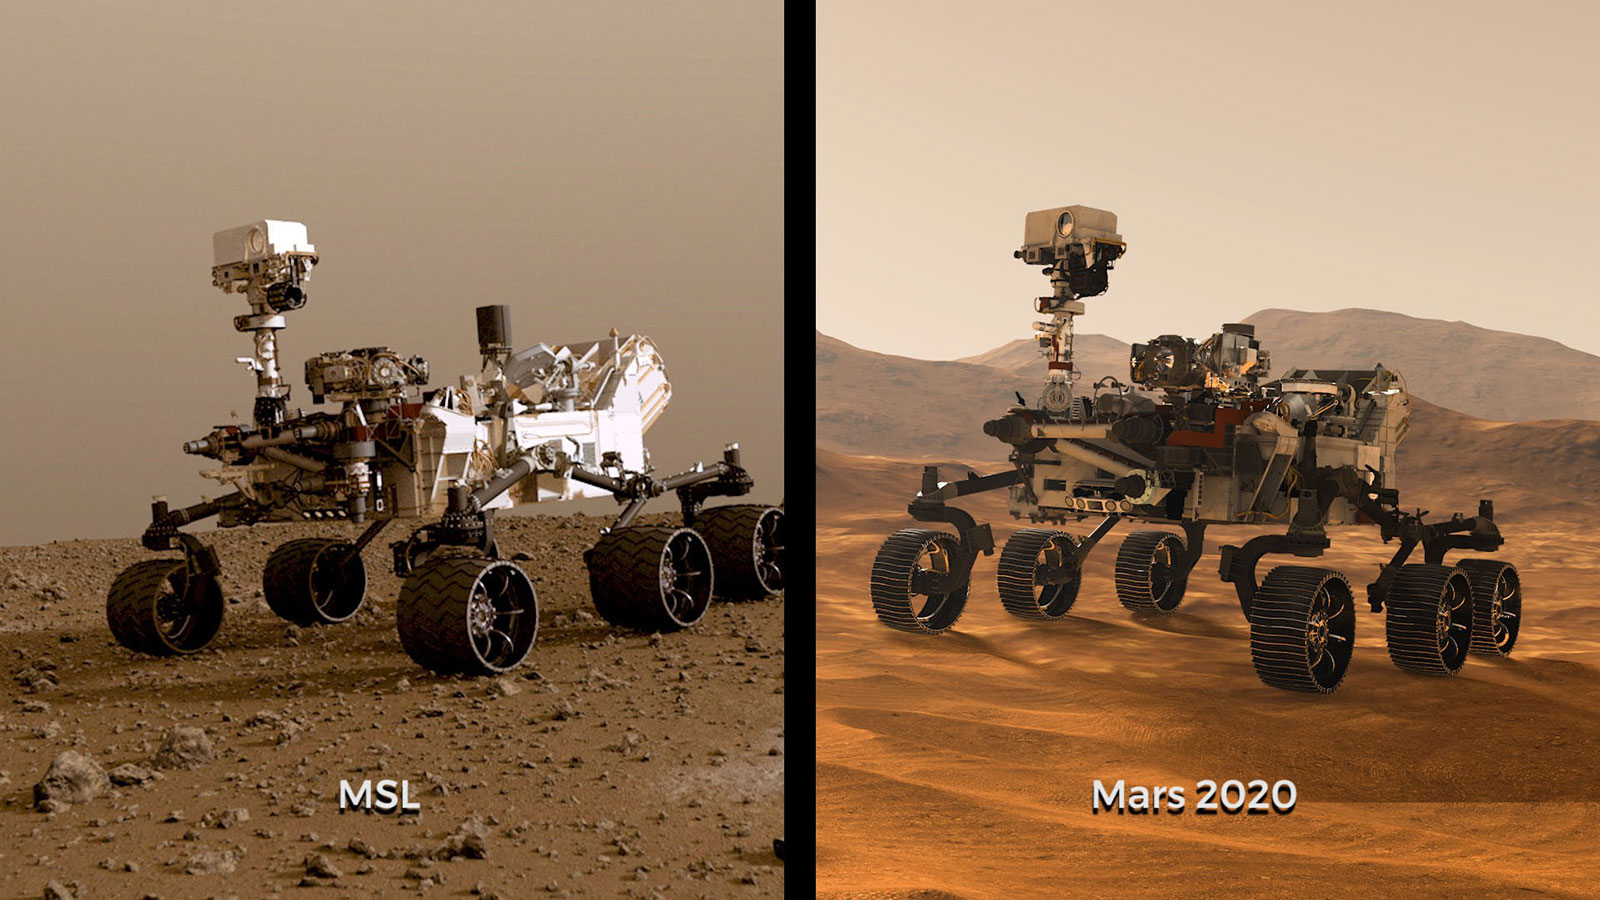 Image showing NASA's Curiosity rover to the left and Mars 2020 rover to the right.